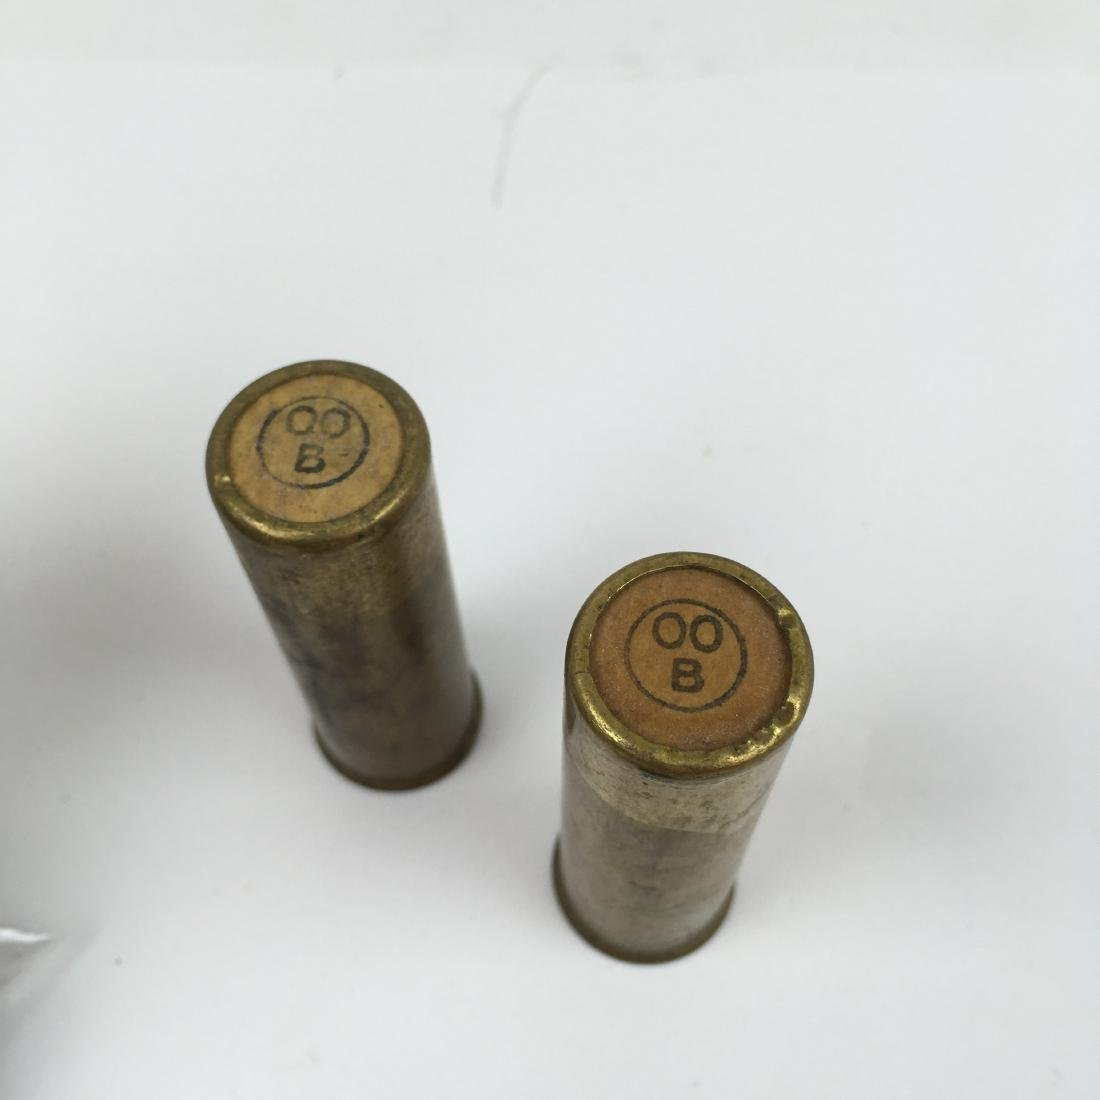 20  OLD WINCHESTER OO B 12GA  BRASS SHOTGUN SHELLS - 4